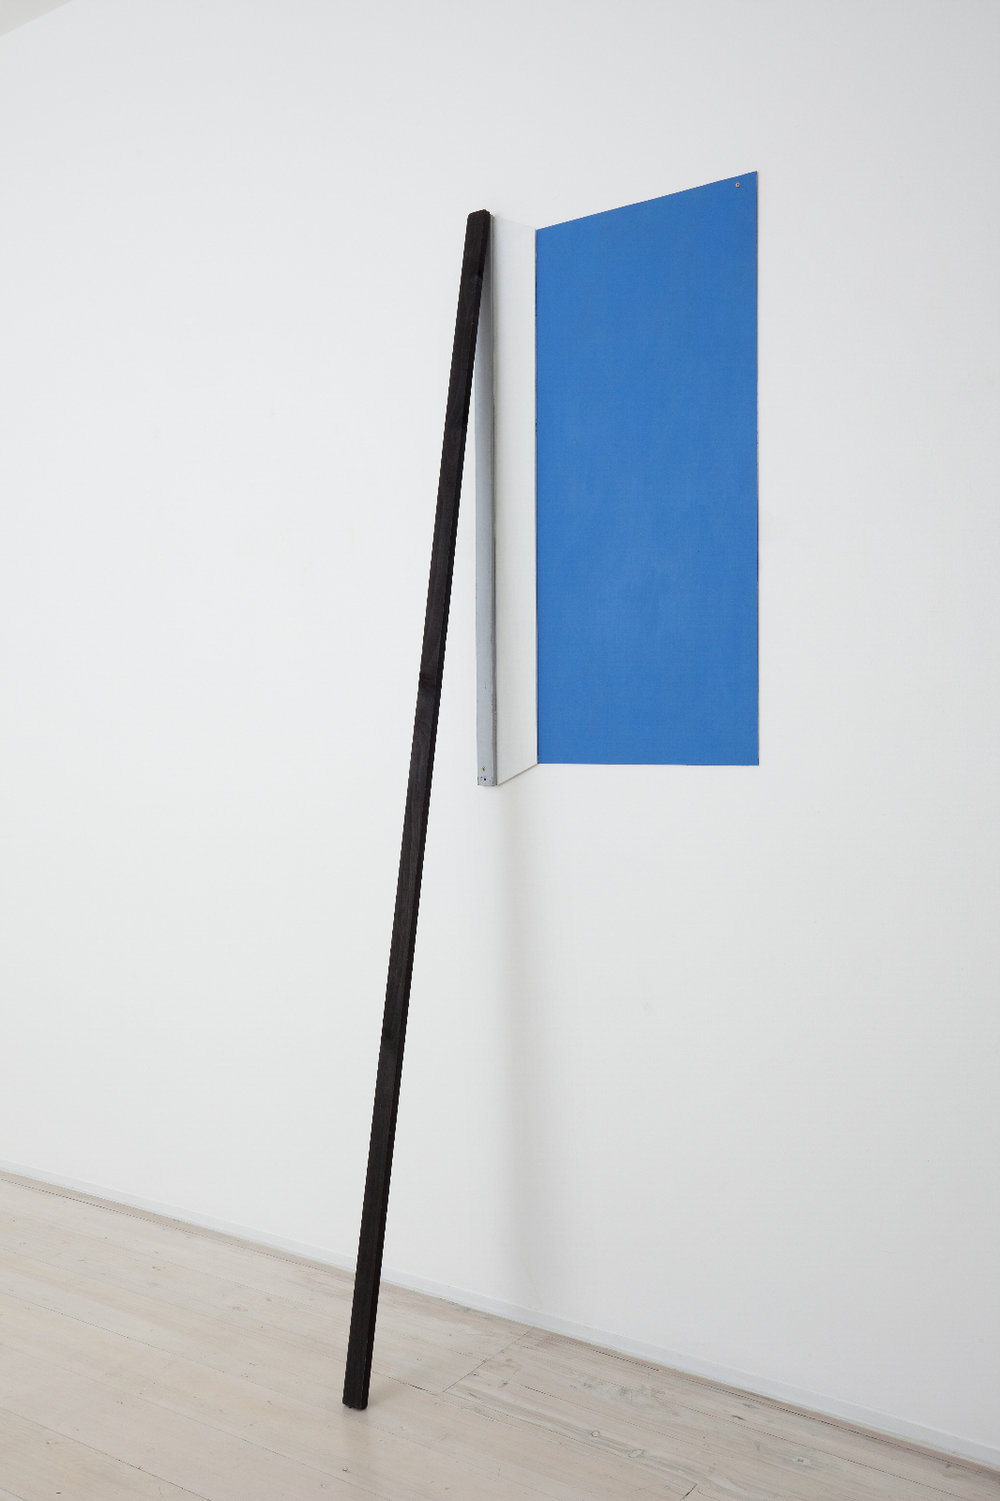 SIMON BLAU  Prop for Blue  2011 acrylic on mdf and timber 228.5 × 62 cm